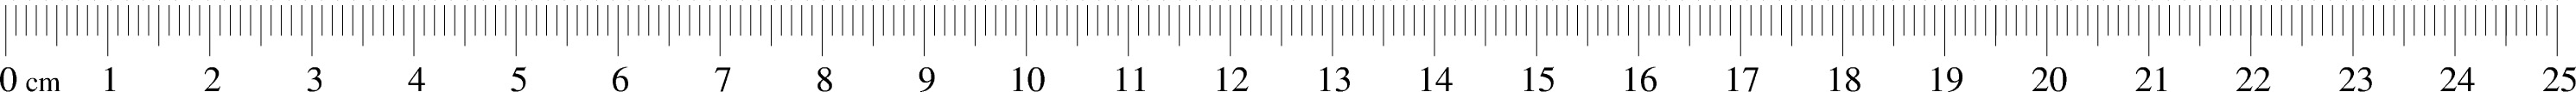 Metric Ruler Actual Size Image